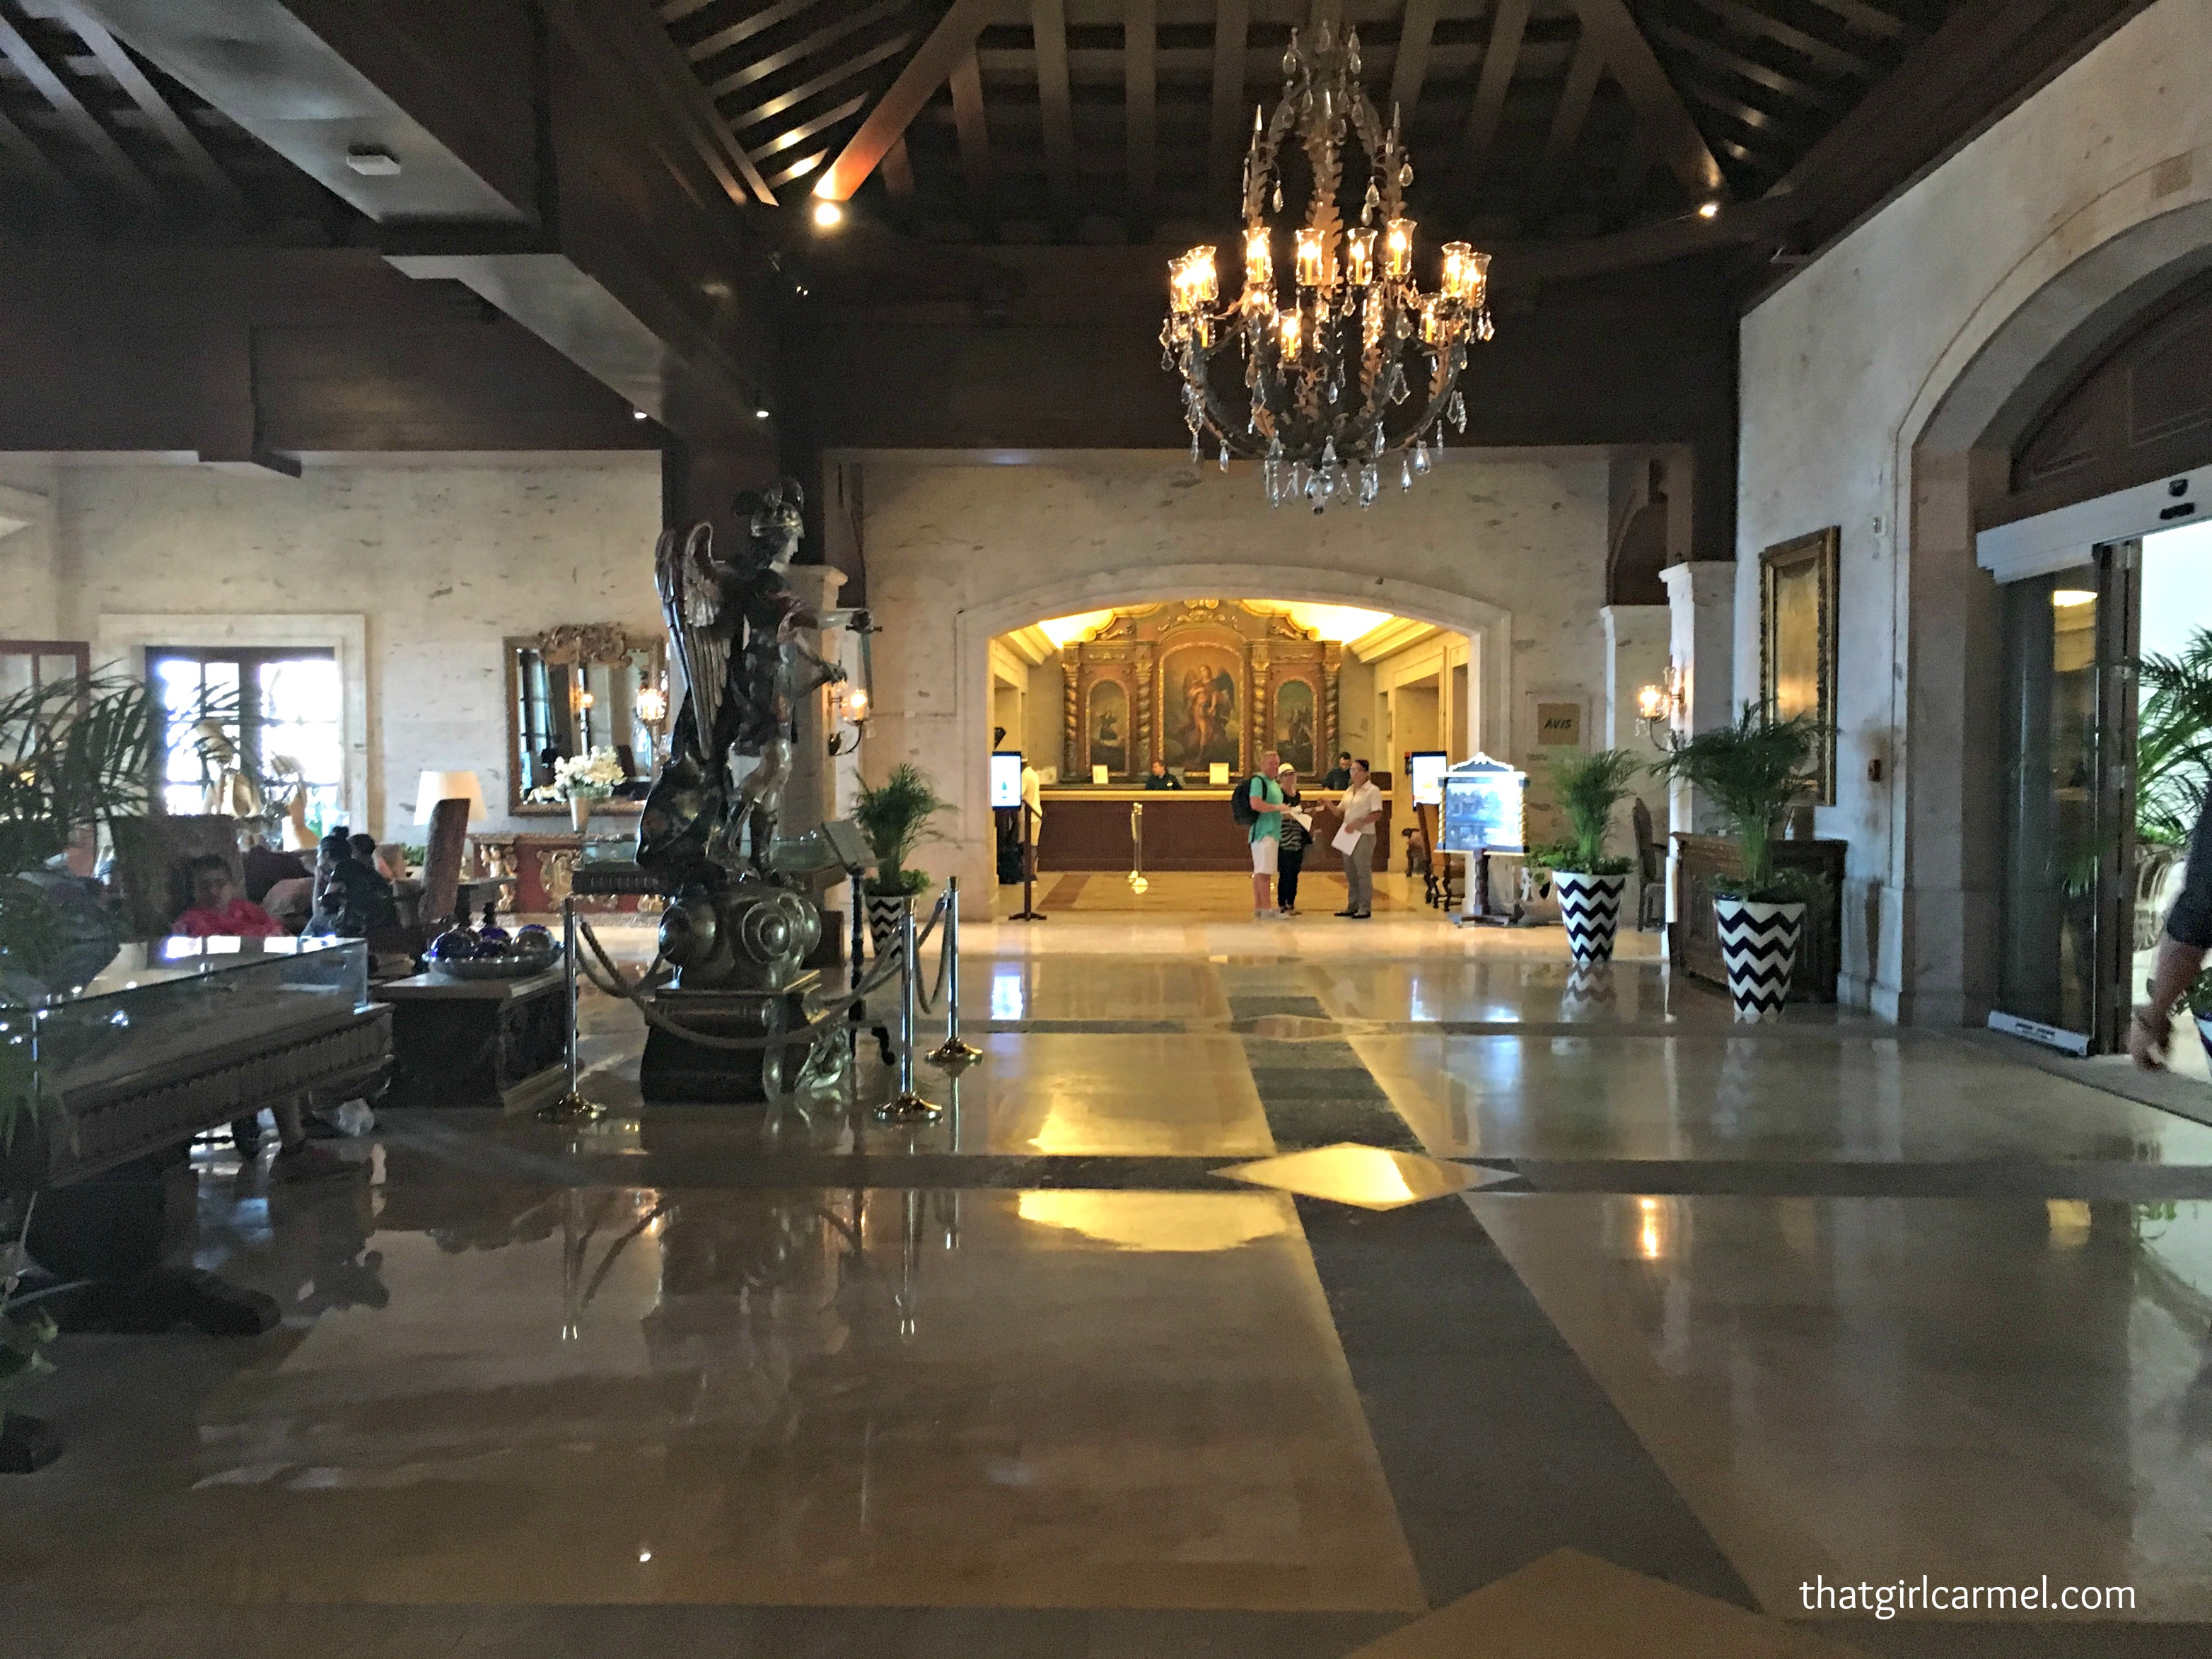 Inside of the lobby